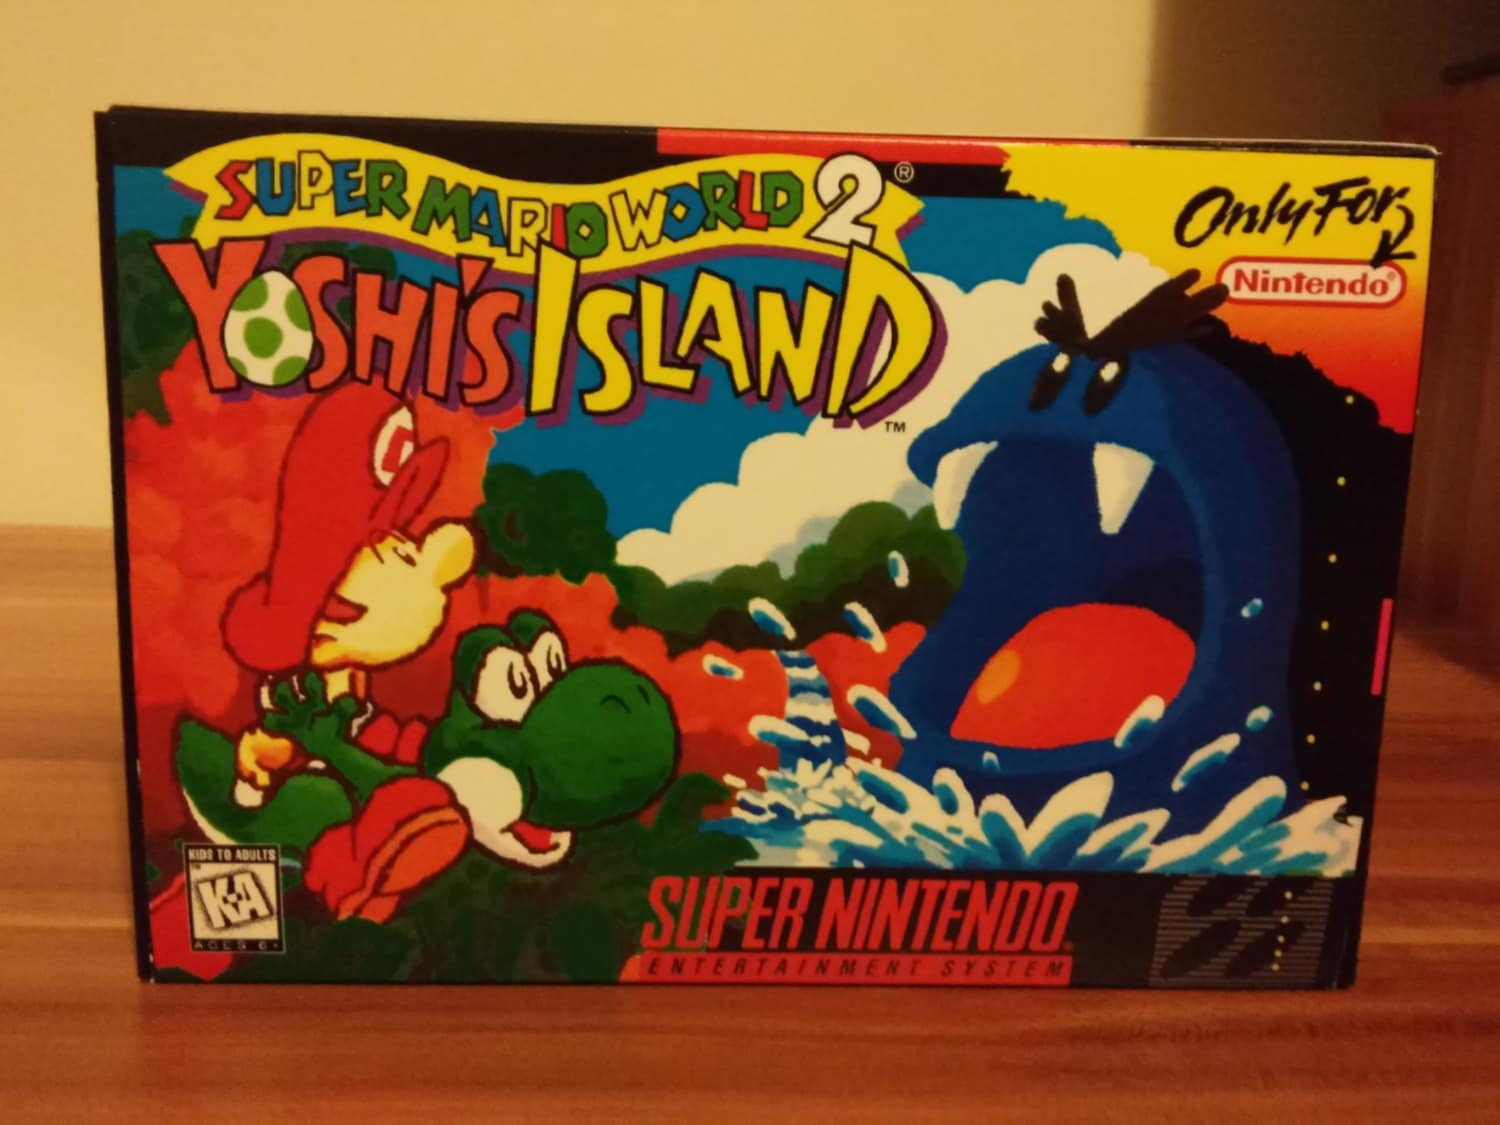 SNES Super Mario World 2  Yoshis Island  Repro Box and Insert NO Game Included